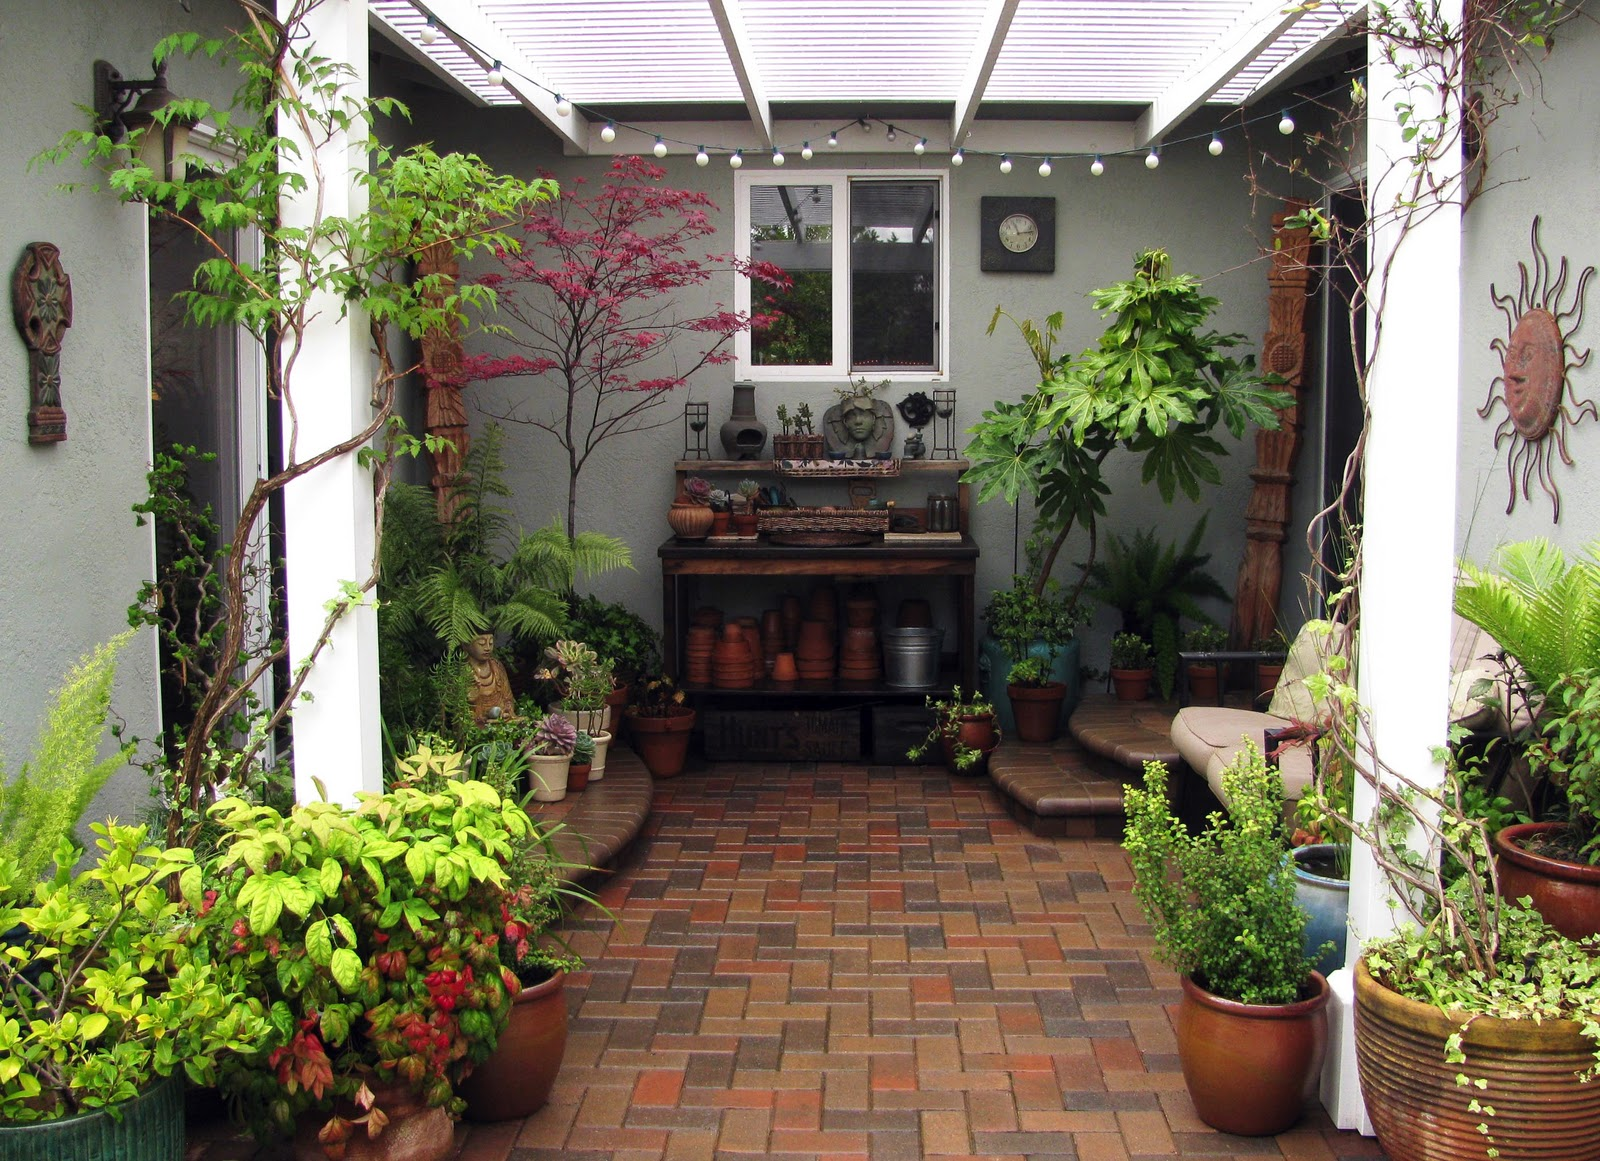 Interleafings garden designers roundtable expanding for Small space landscape ideas